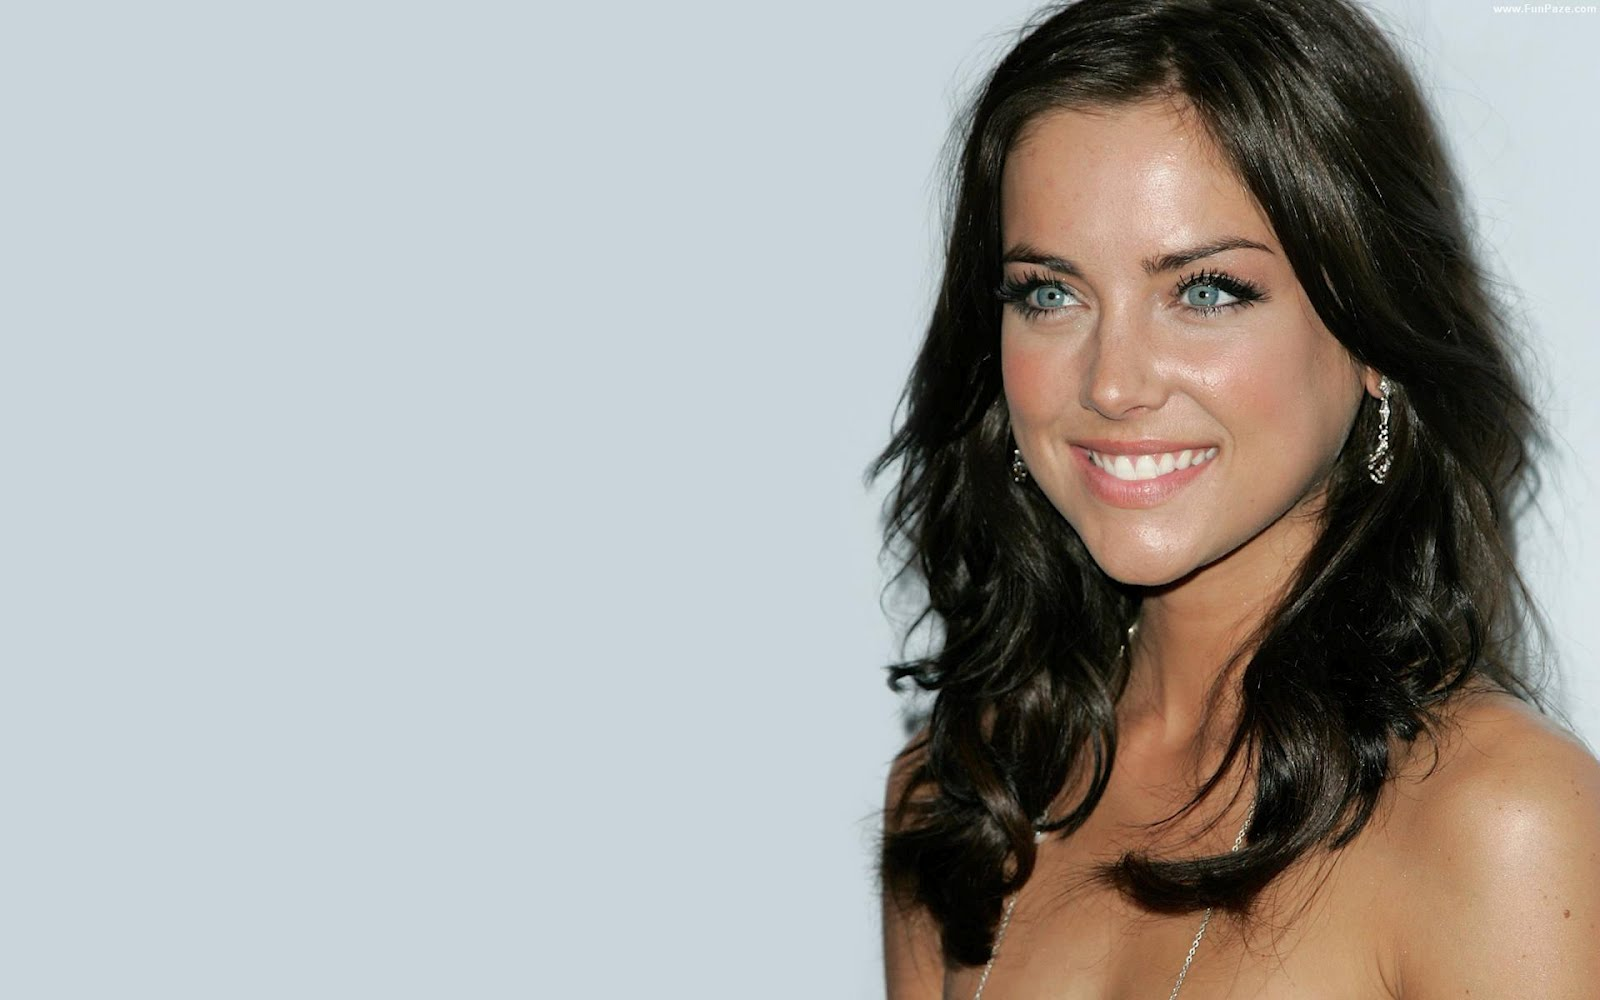 1600x1000 - Jessica Stroup Wallpapers 16